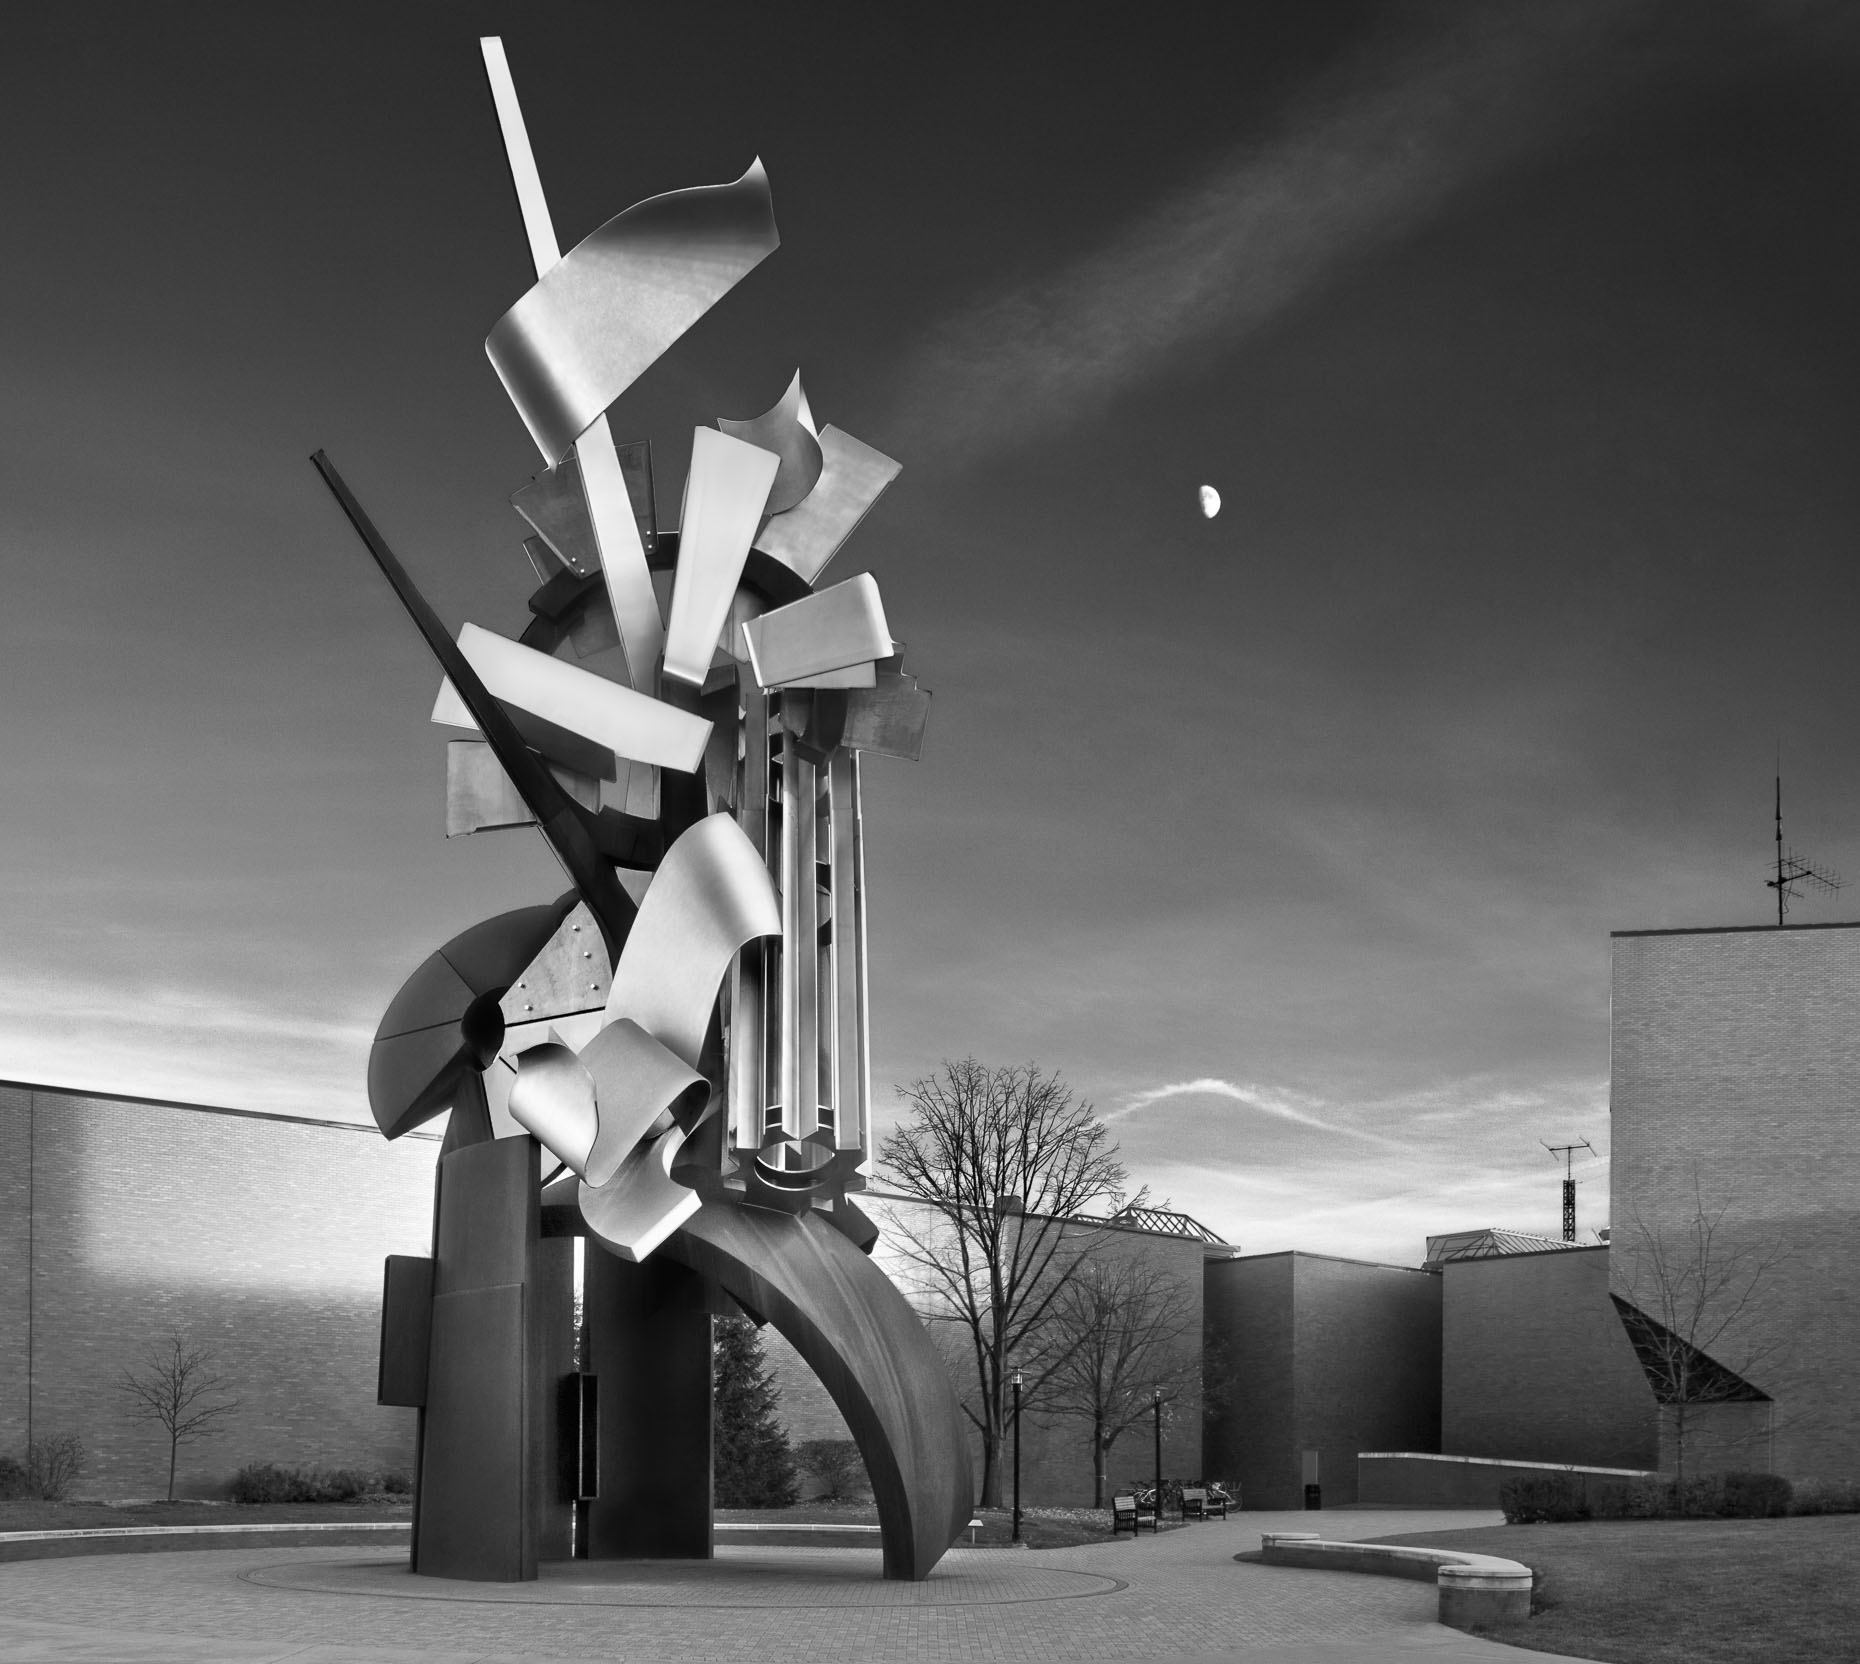 The Sentinel. Designed by Albert Paley